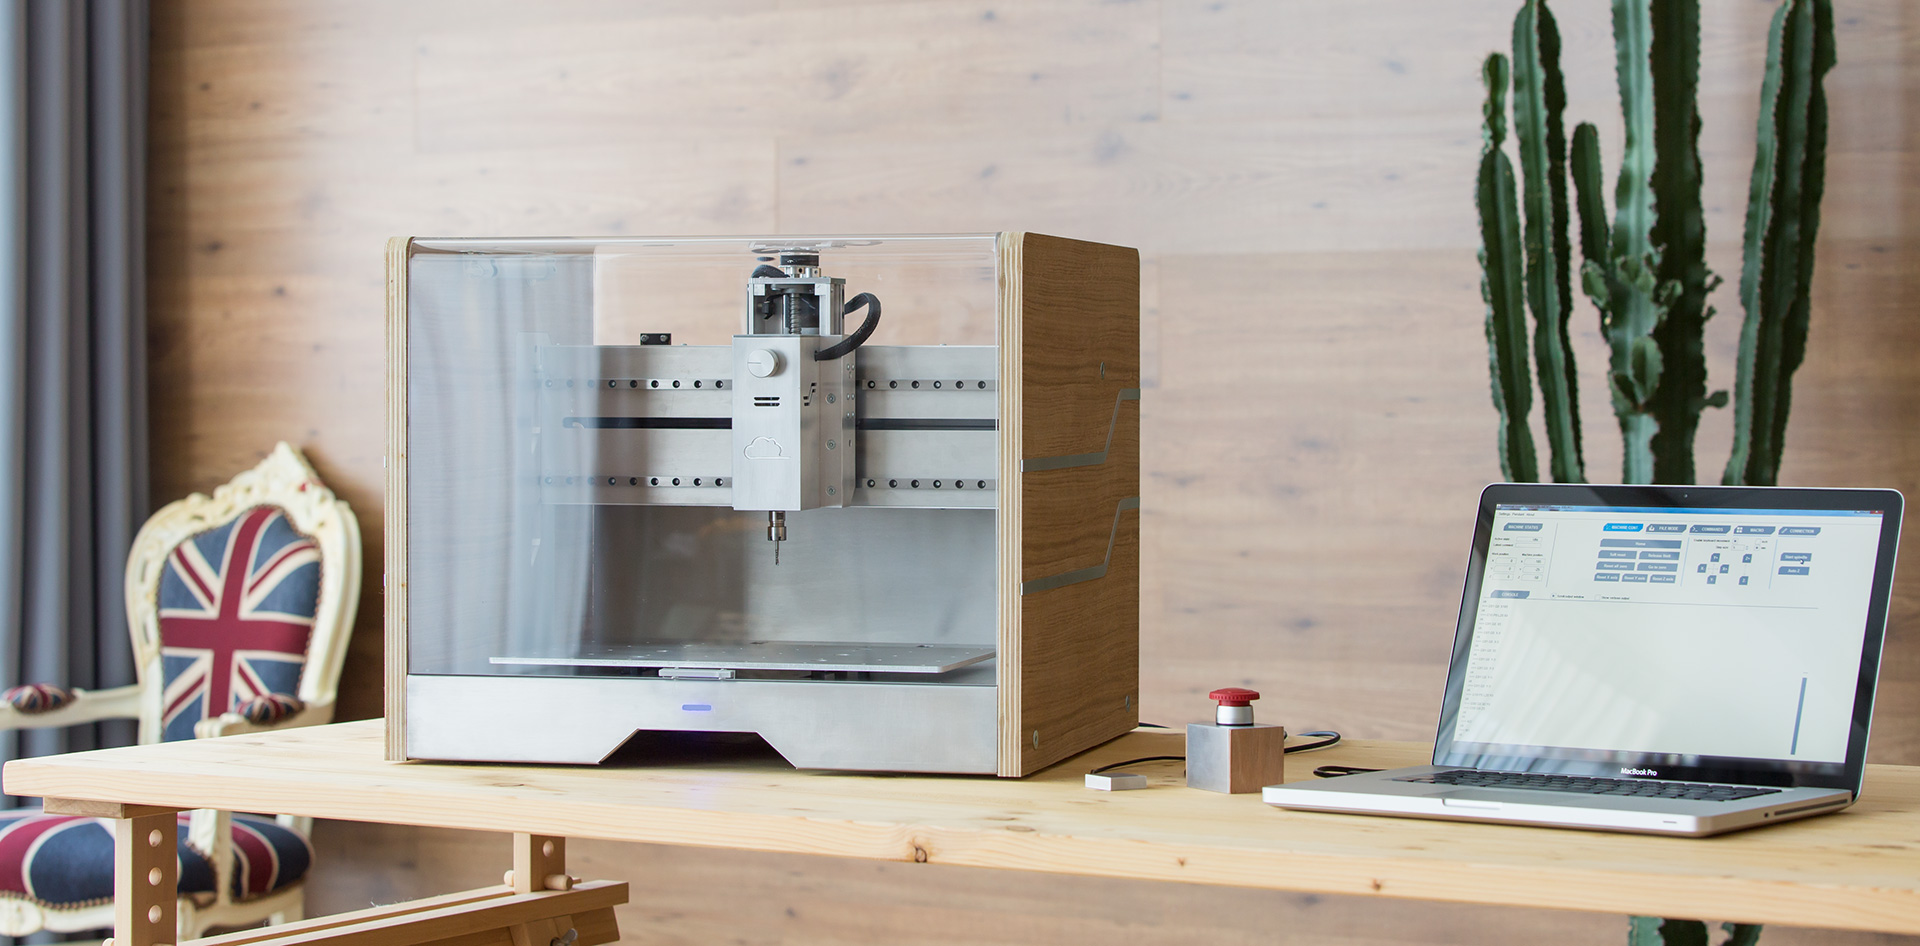 cnc mill desktop kickstarter #cnc #milling #machine